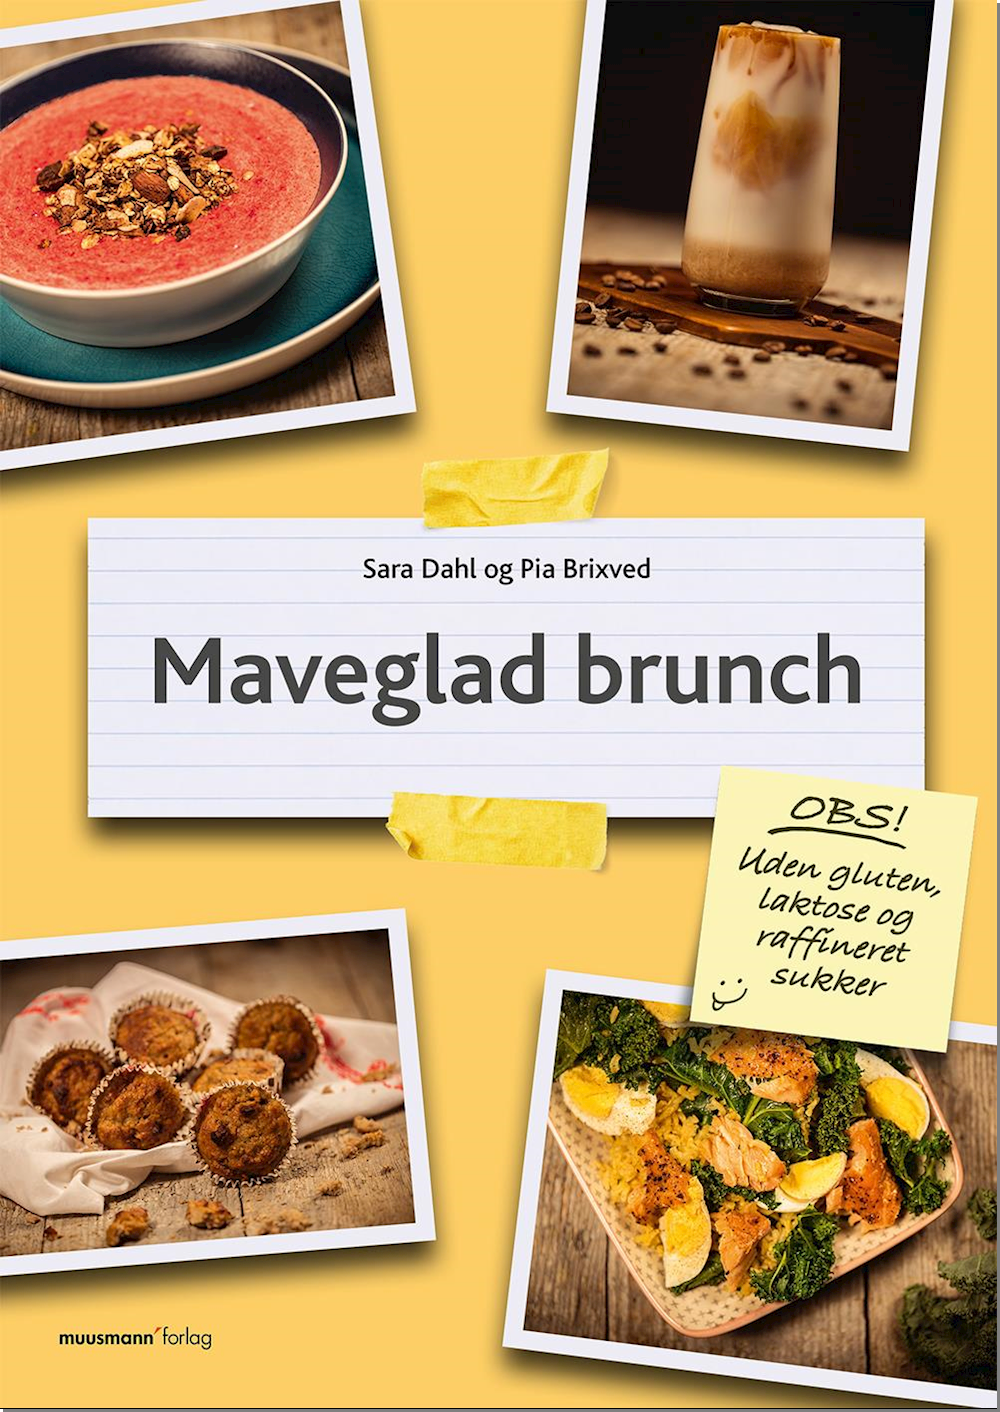 Maveglad brunch